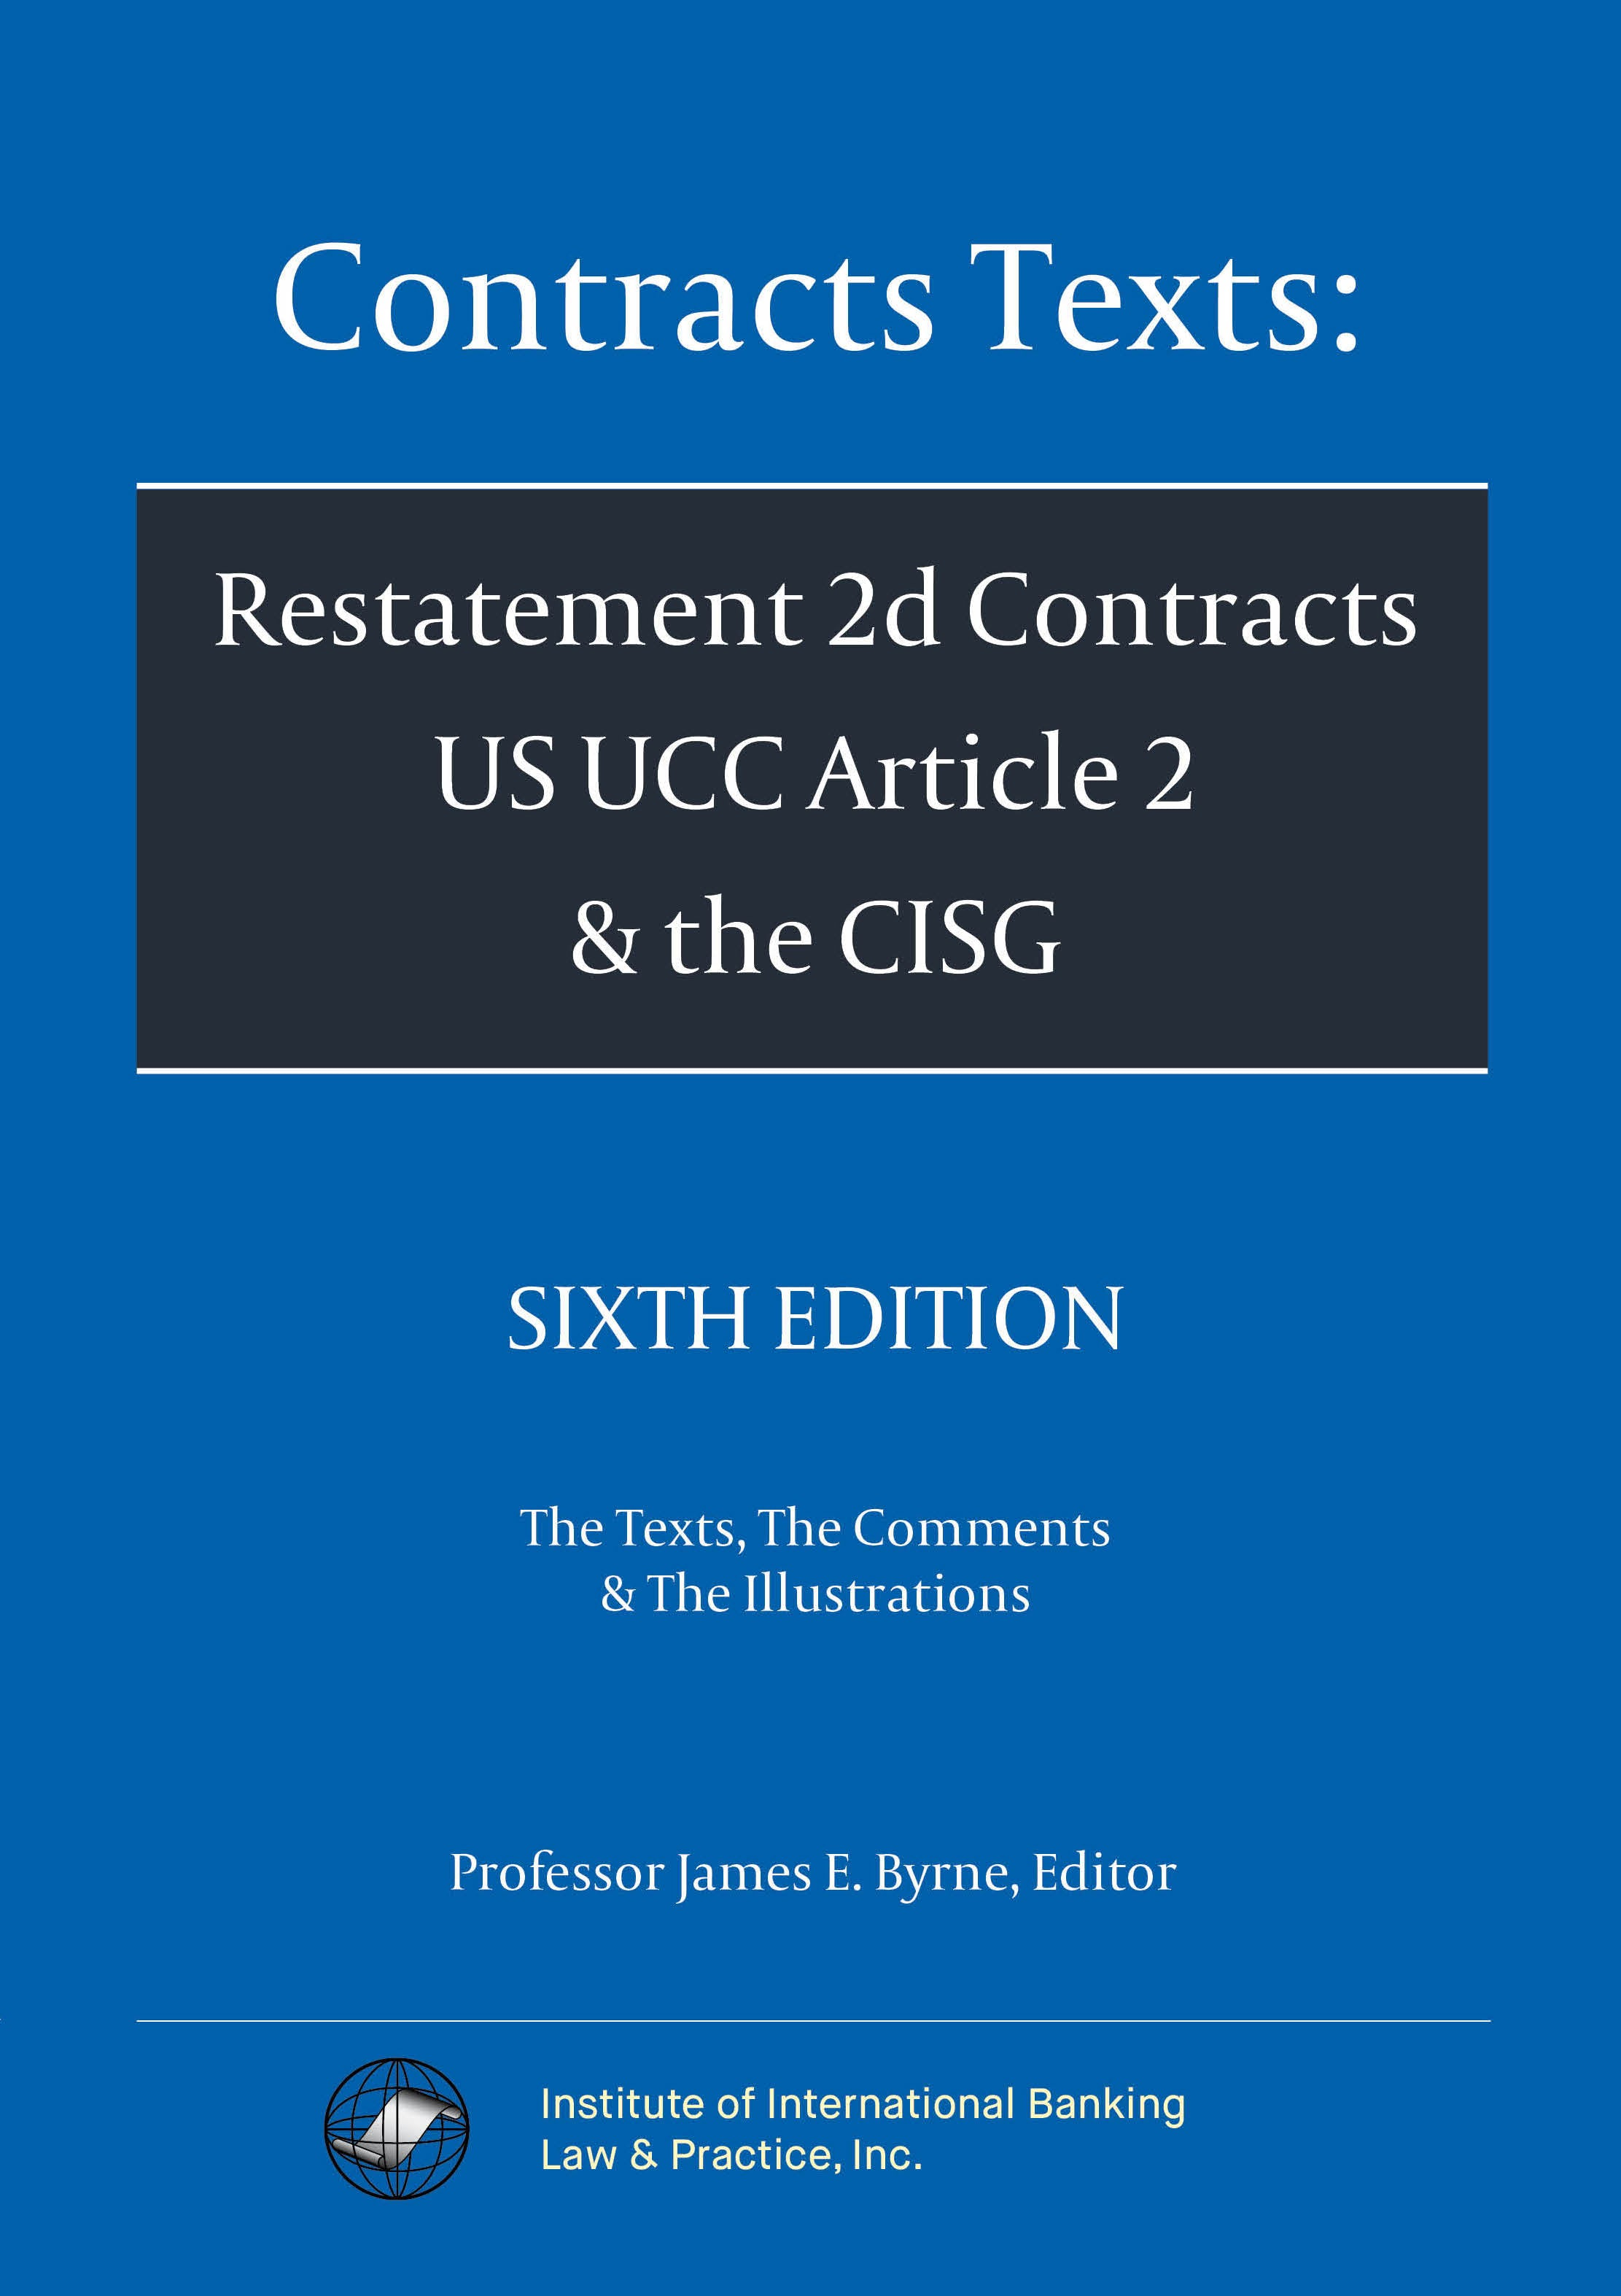 Contracts Texts: Restatement 2d Contracts, UCC Article 2 & CISG - 6th Edition